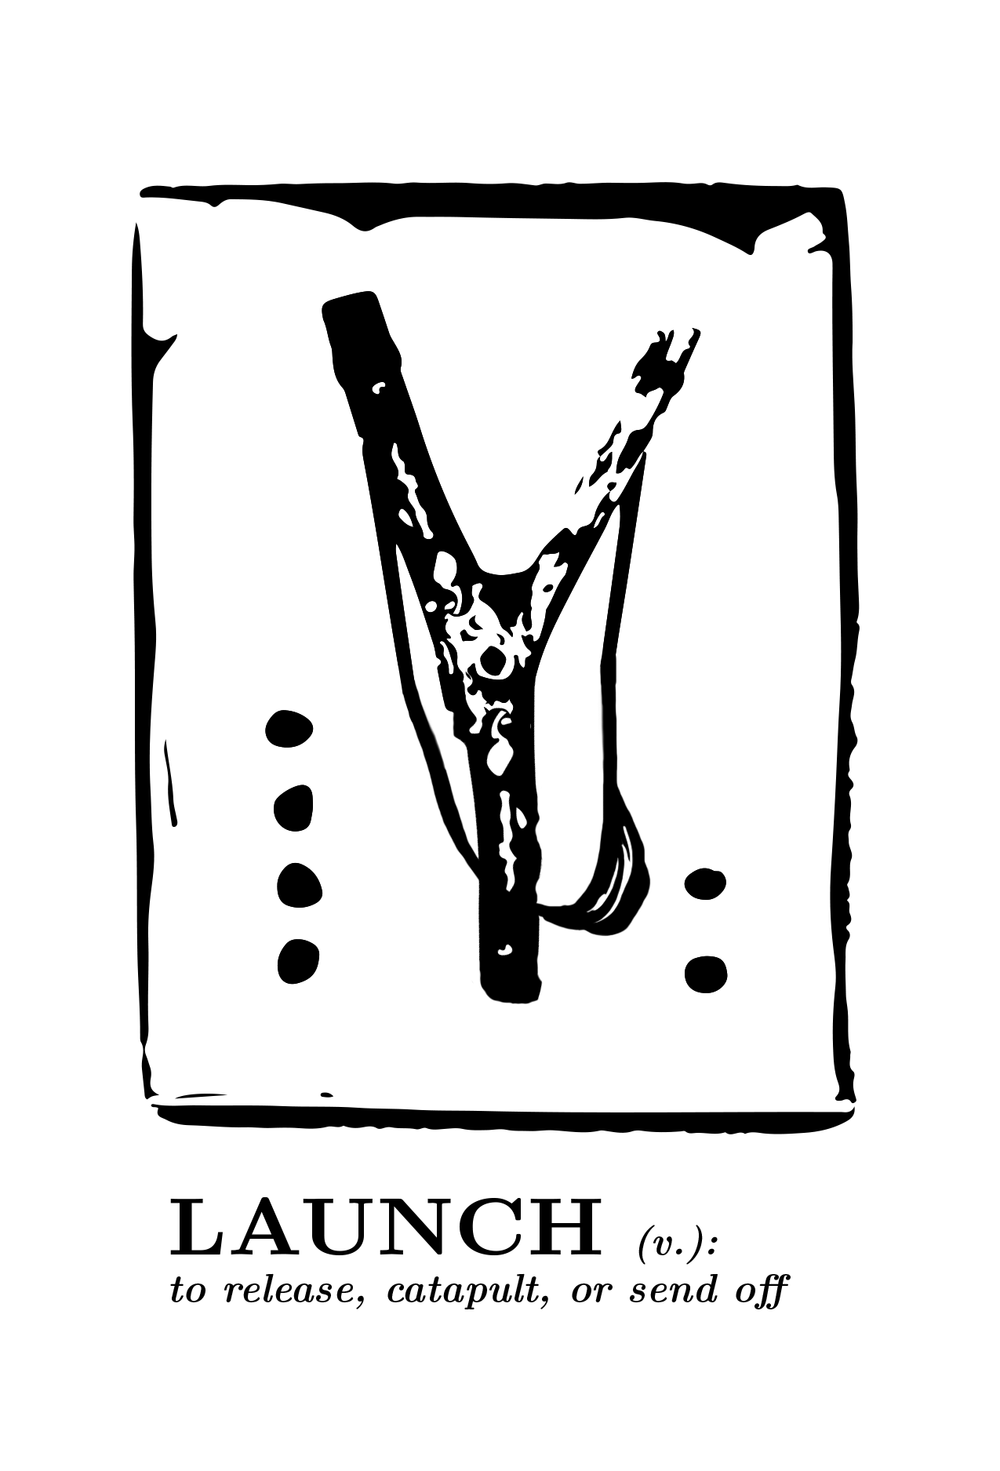 posterdesign-launch-2